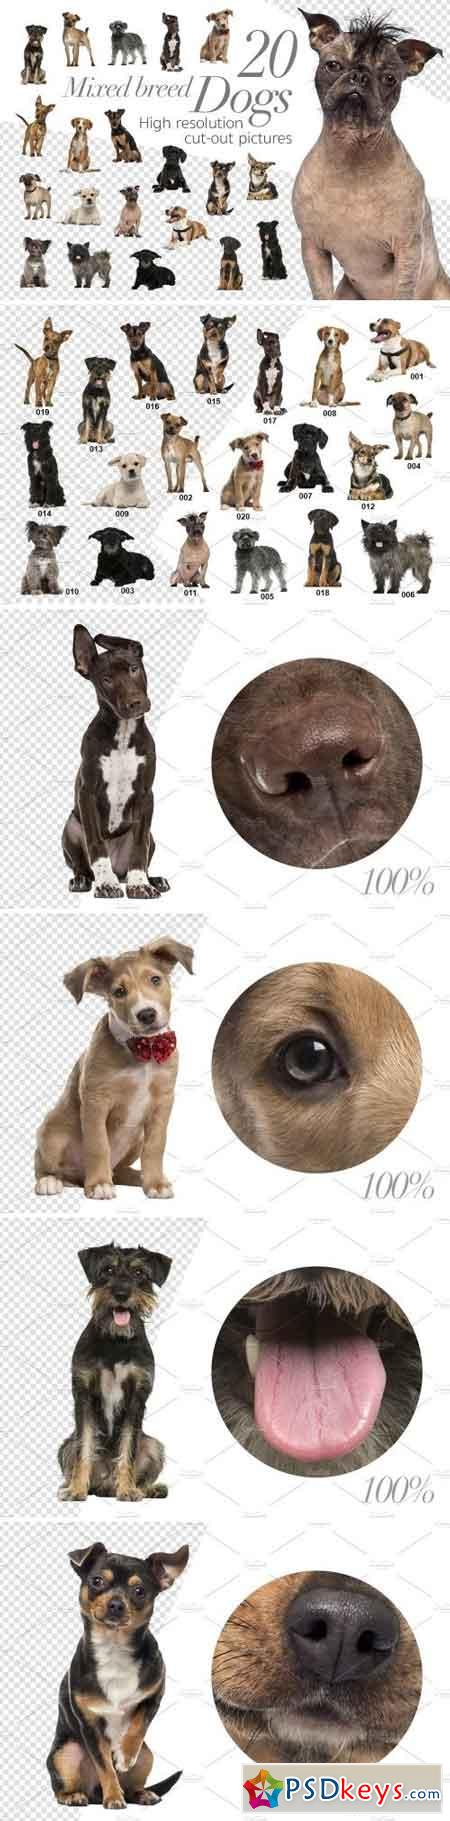 20 Mixed breed Dogs - Cut-out Pics 2029733